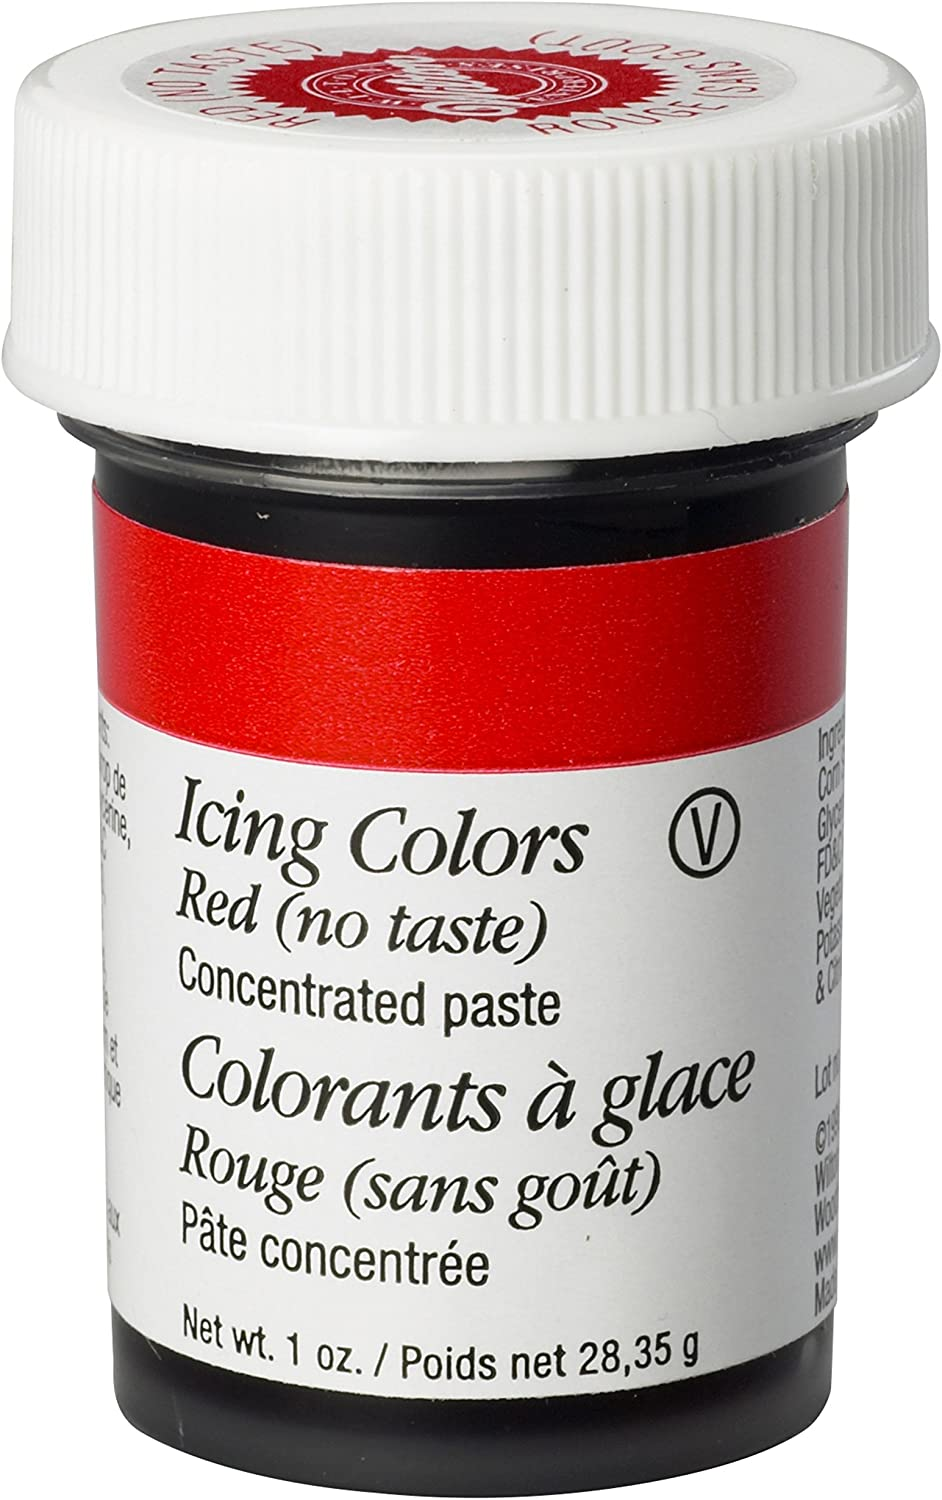 Wilton No-Taste Red Icing Color, 1 oz. - Red Food Coloring